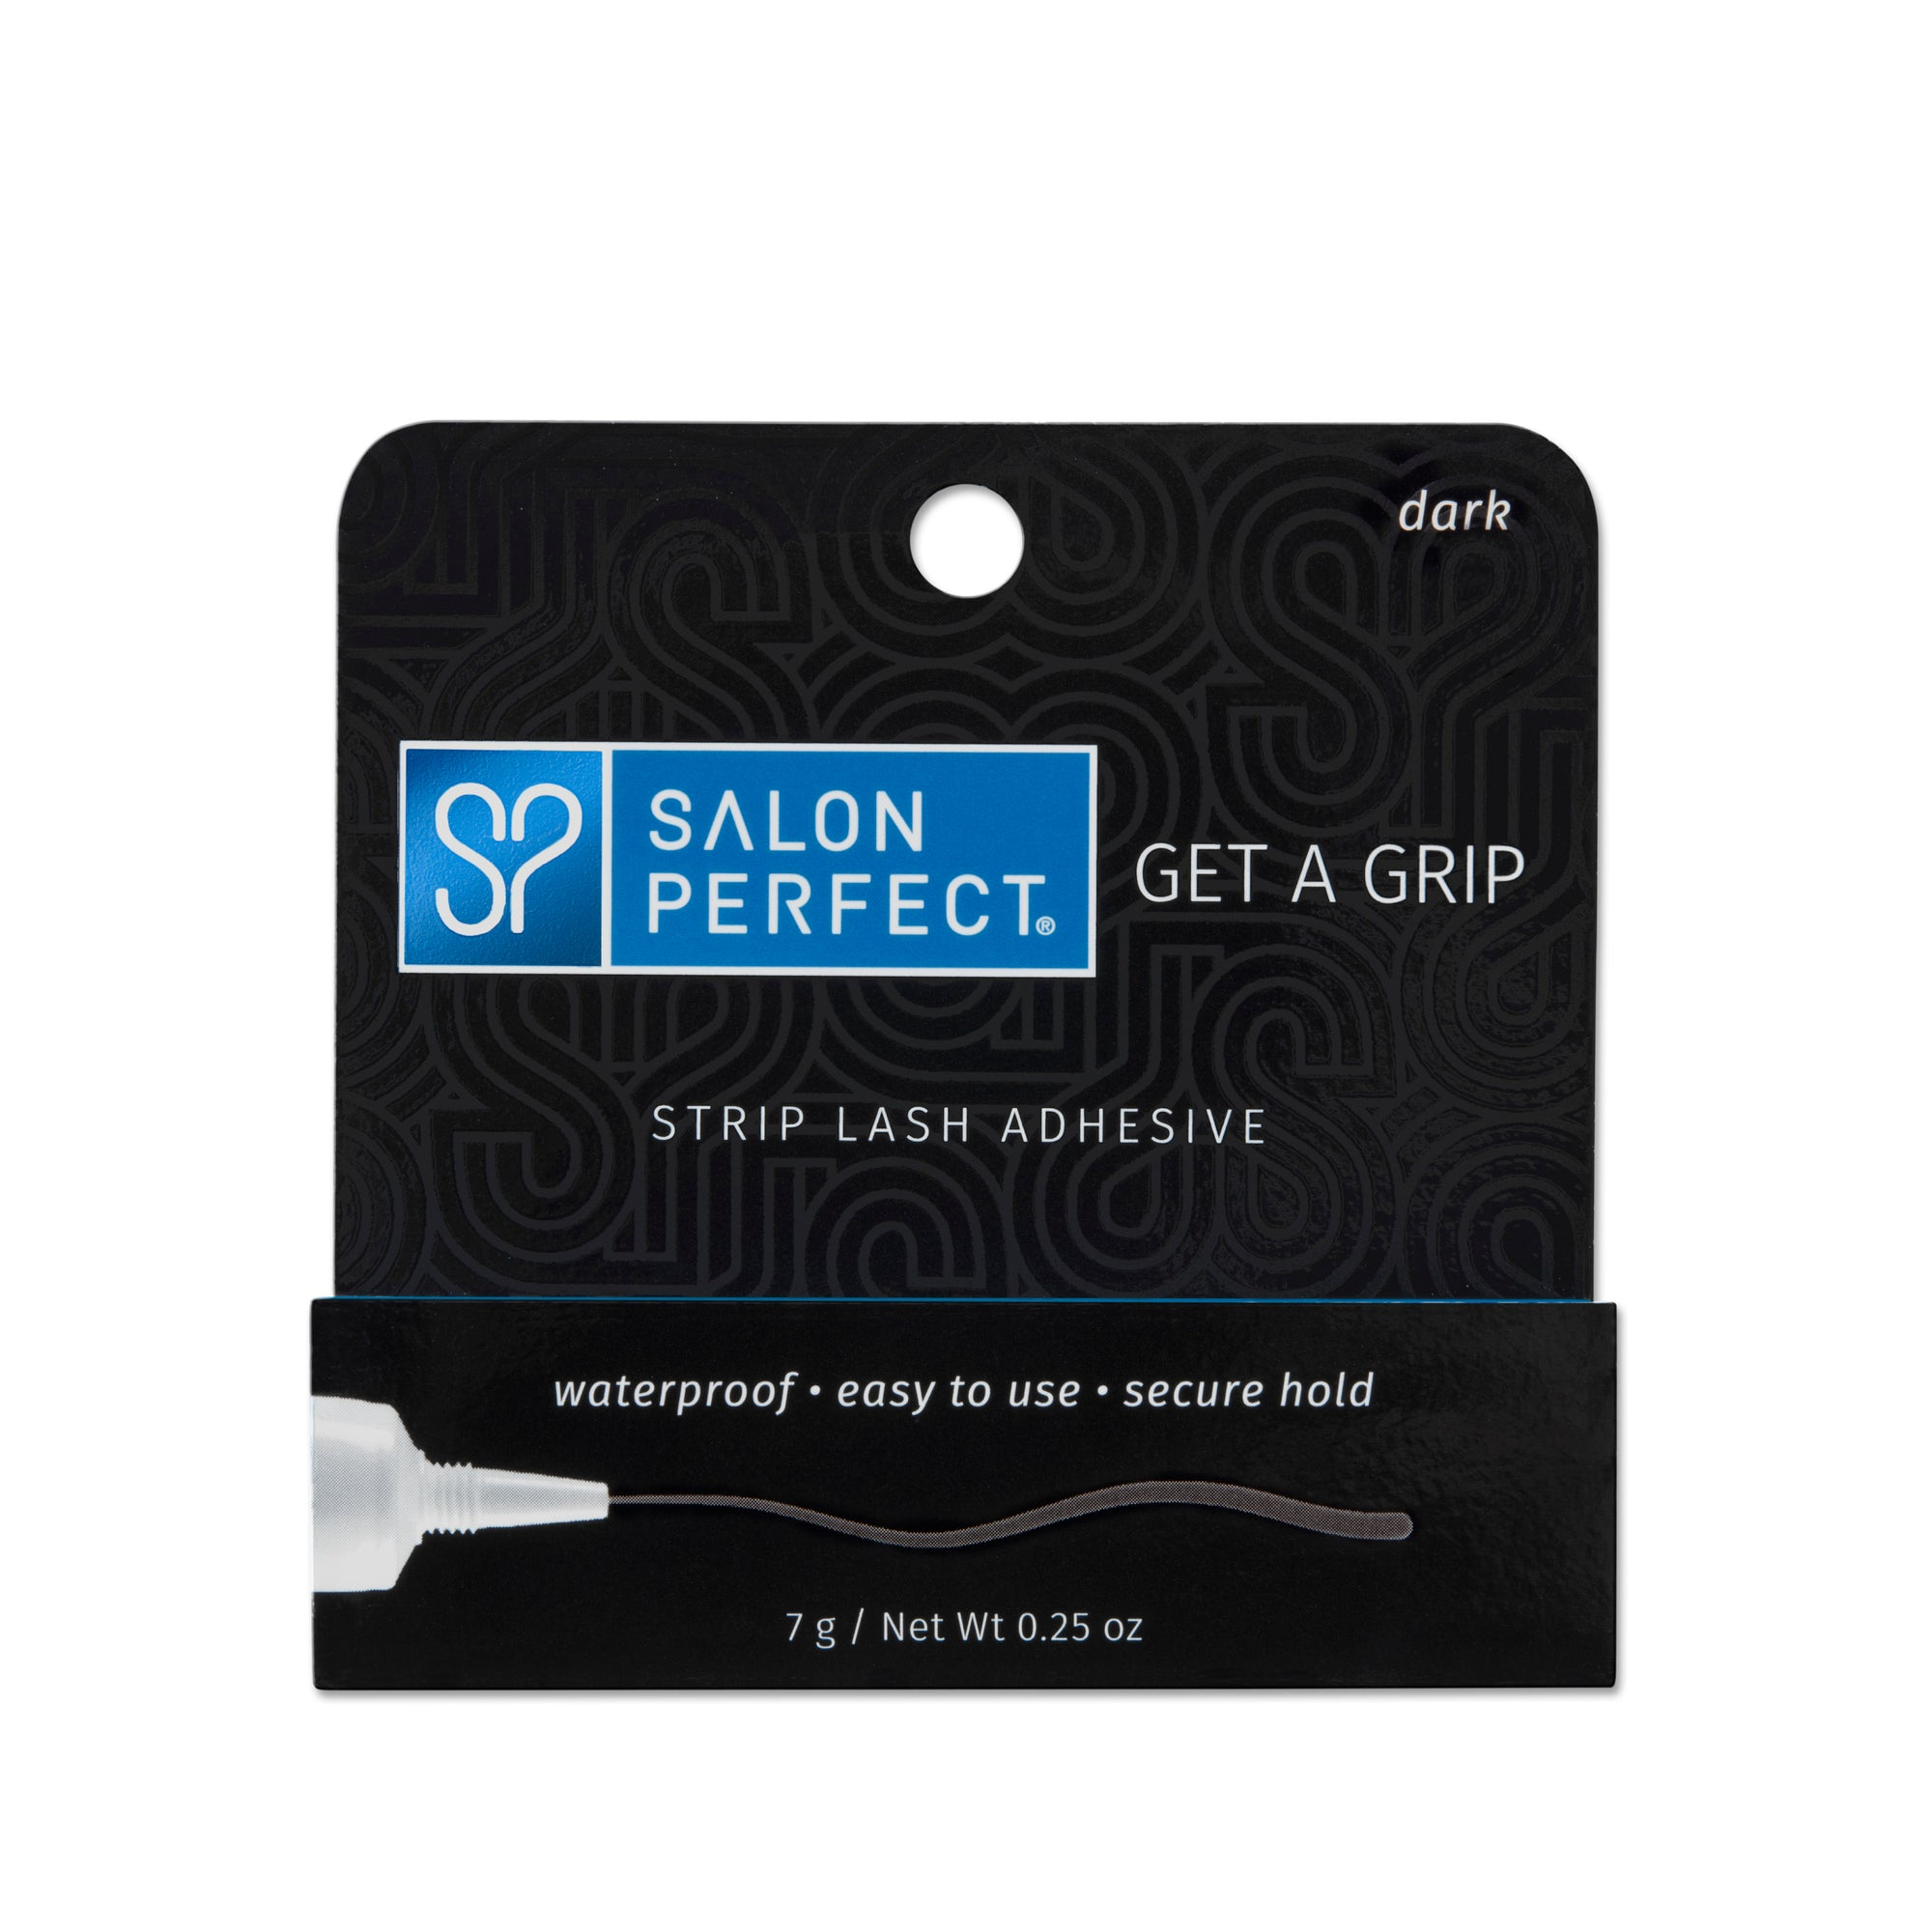 Salon Perfect - Get a Grip Bandwimpern Kleber Dark